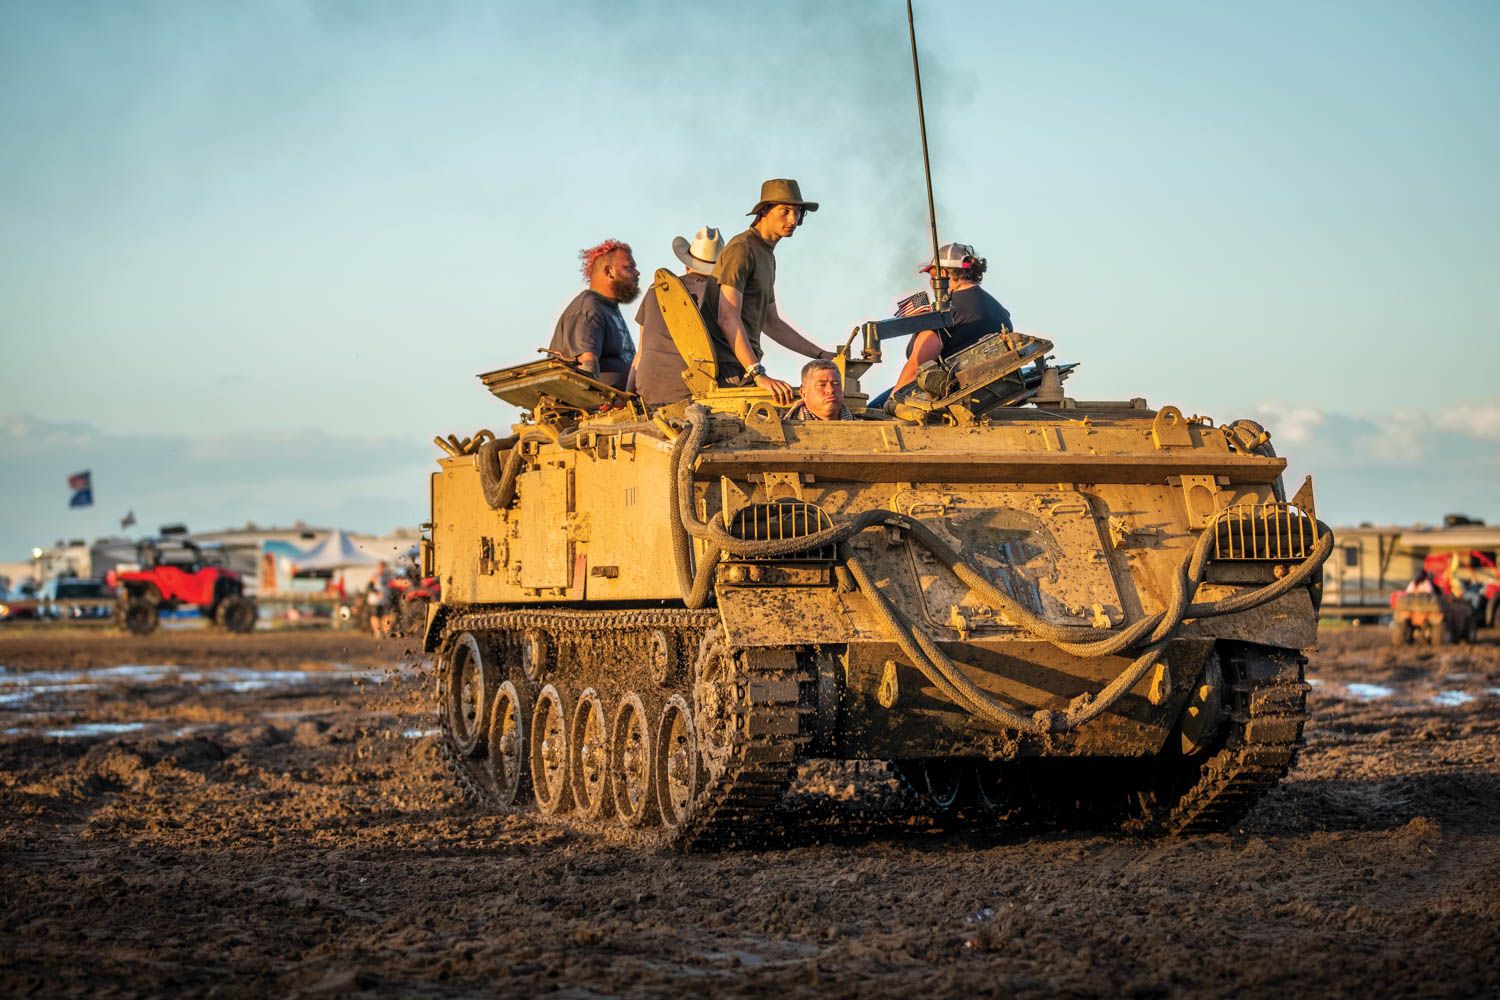 More unusual, the 'Nam-era armored personnel carrier is just as effective as a party wagon.